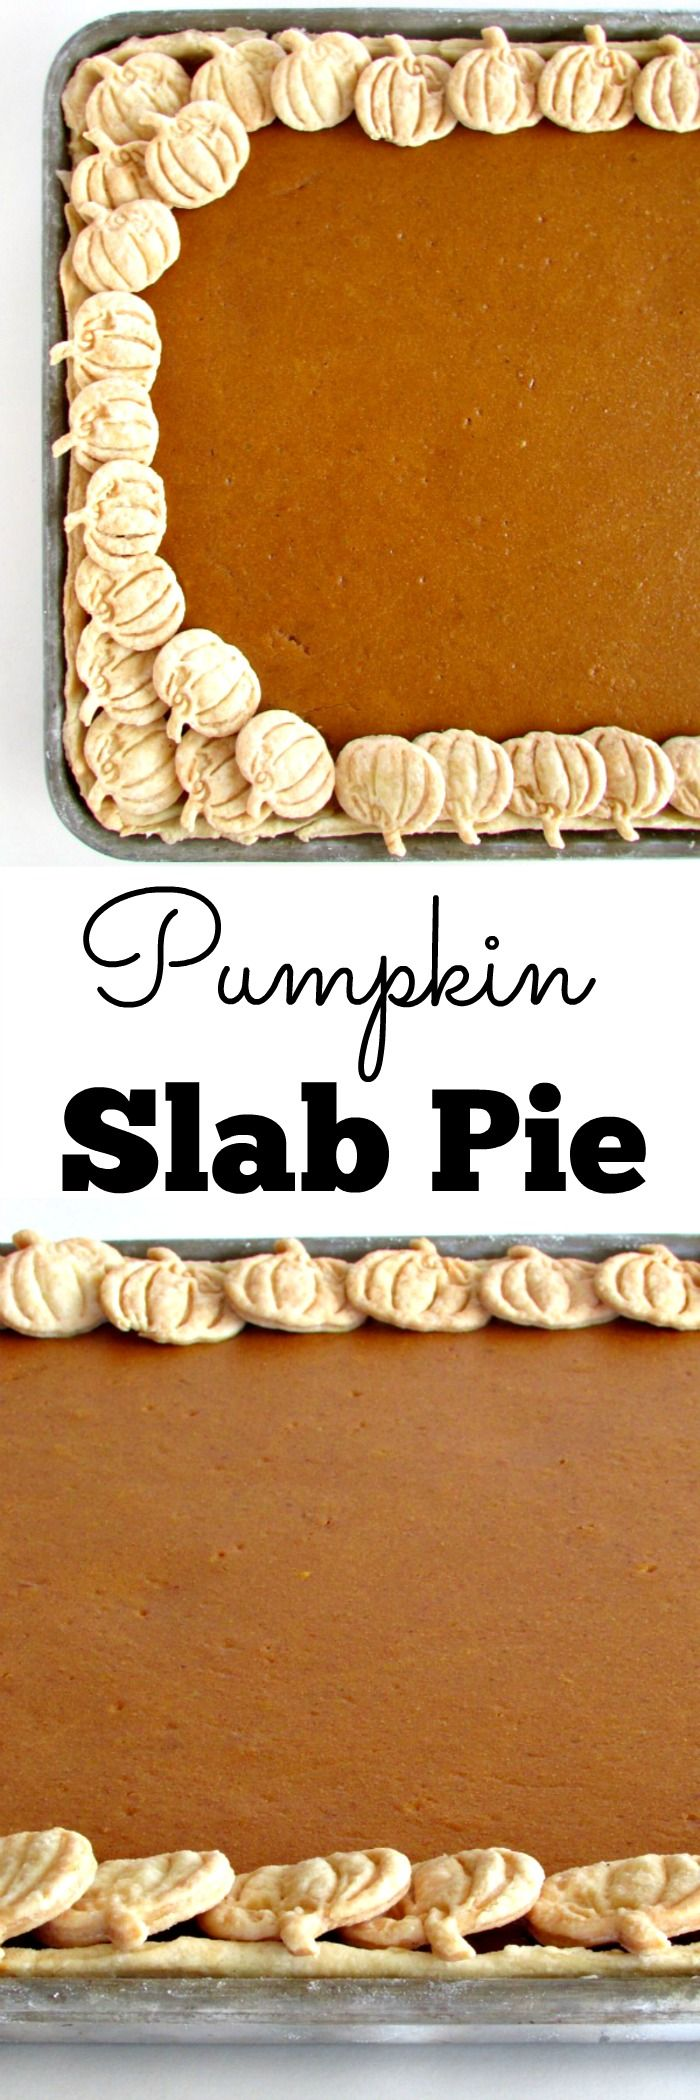 Pumpkin Slab Pie - This pie is amazing because it has MORE CRUST than regular pumpkin pie. Also, it's simpler to make than regular pumpkin pie, and those pumpkin crust cut outs are so easy if you just have the right tool! | www.louloubiscuit.com